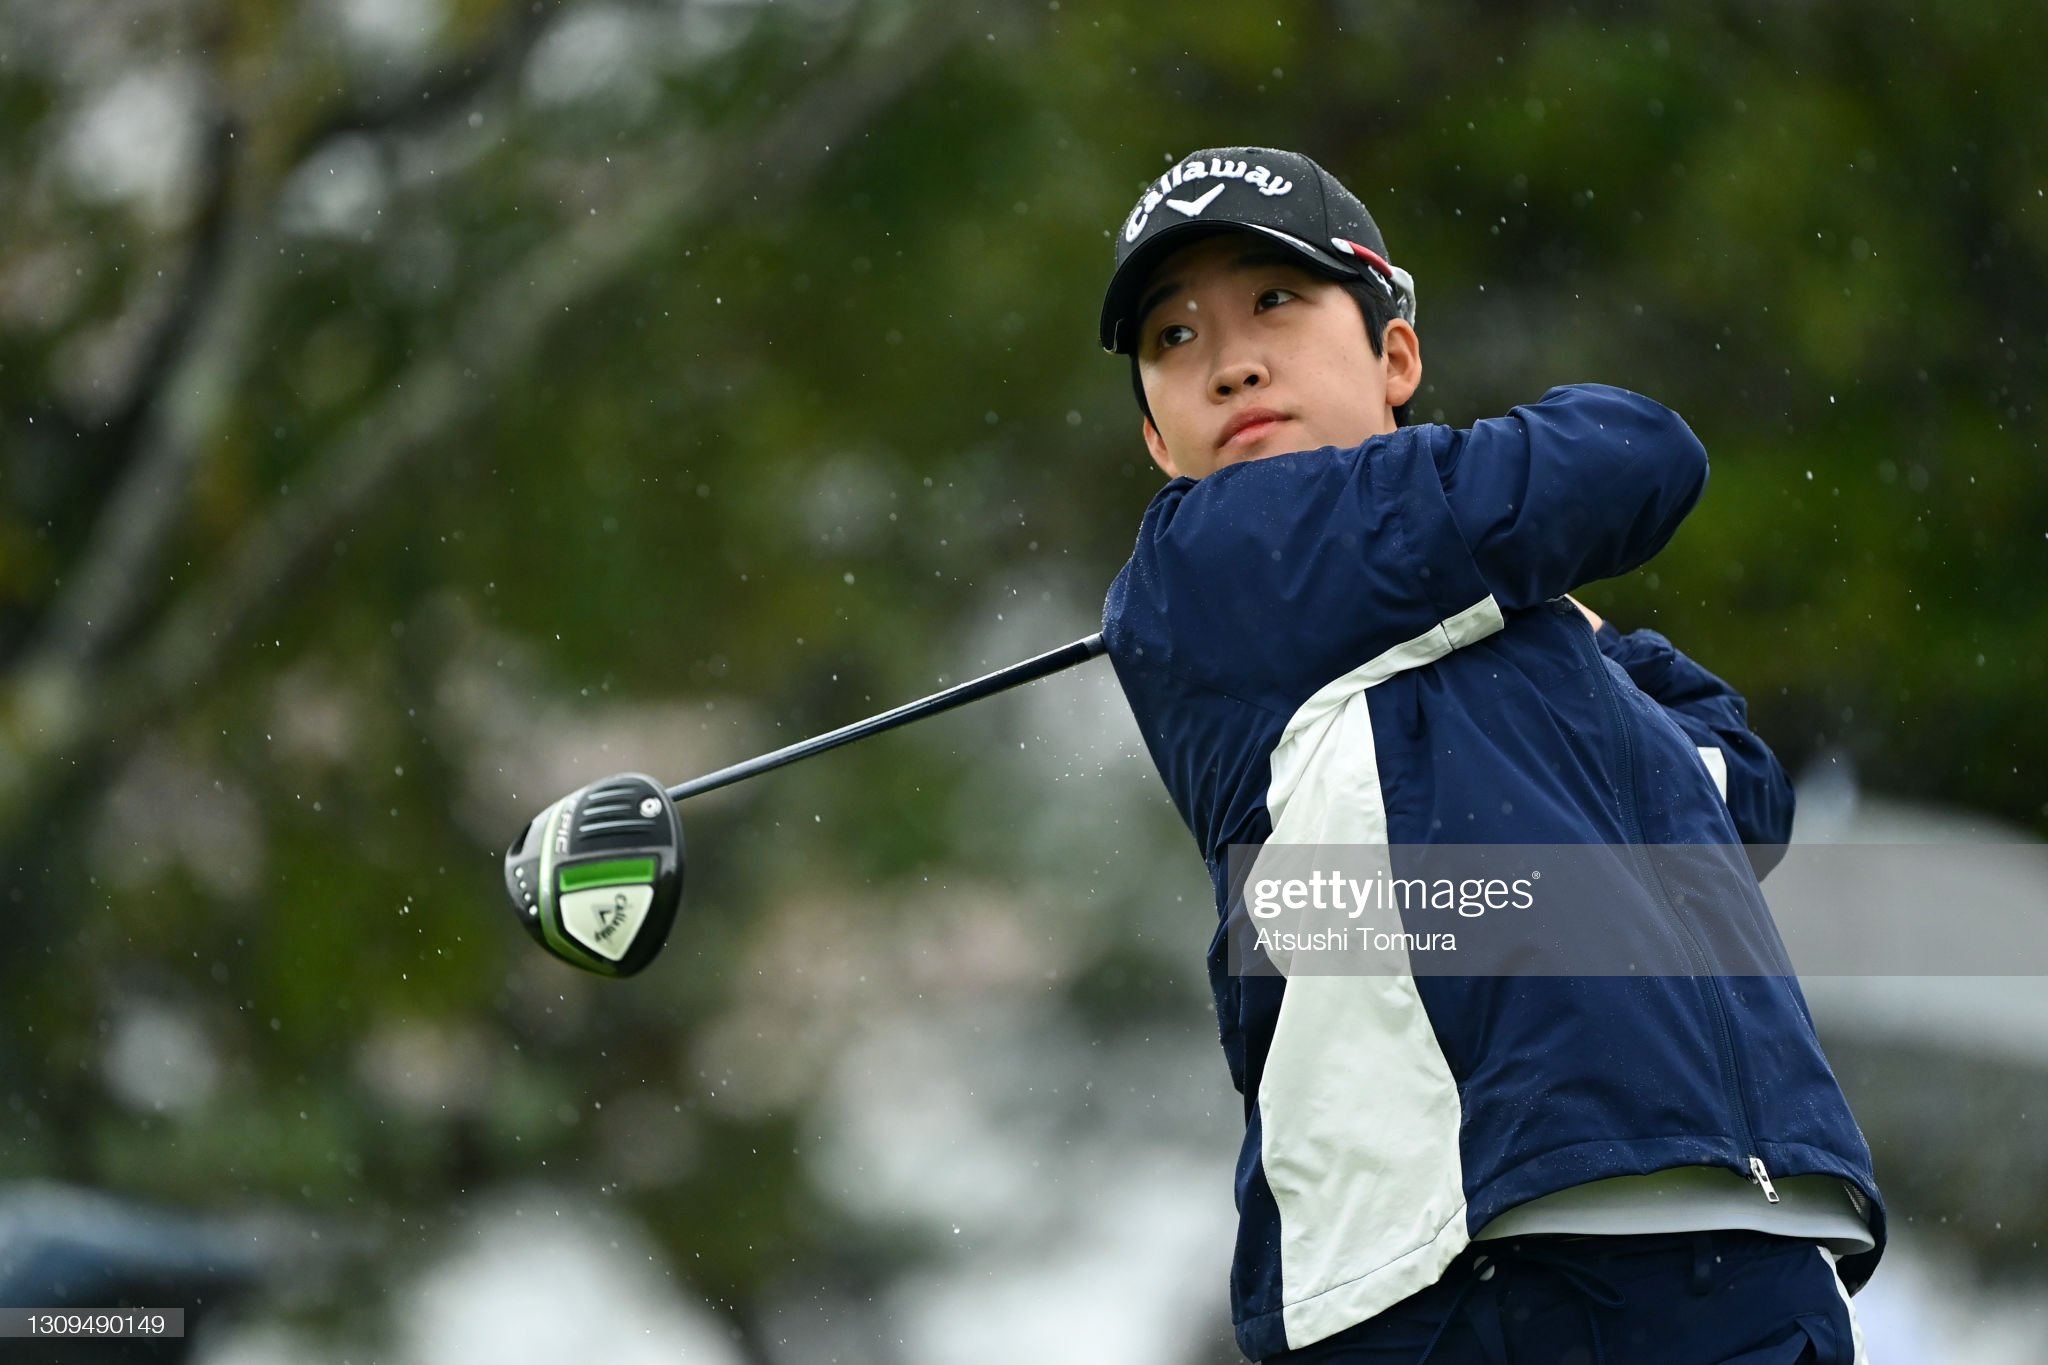 https://media.gettyimages.com/photos/heekyung-bae-of-south-korea-hits-her-tee-shot-on-the-1st-hole-during-picture-id1309490149?s=2048x2048